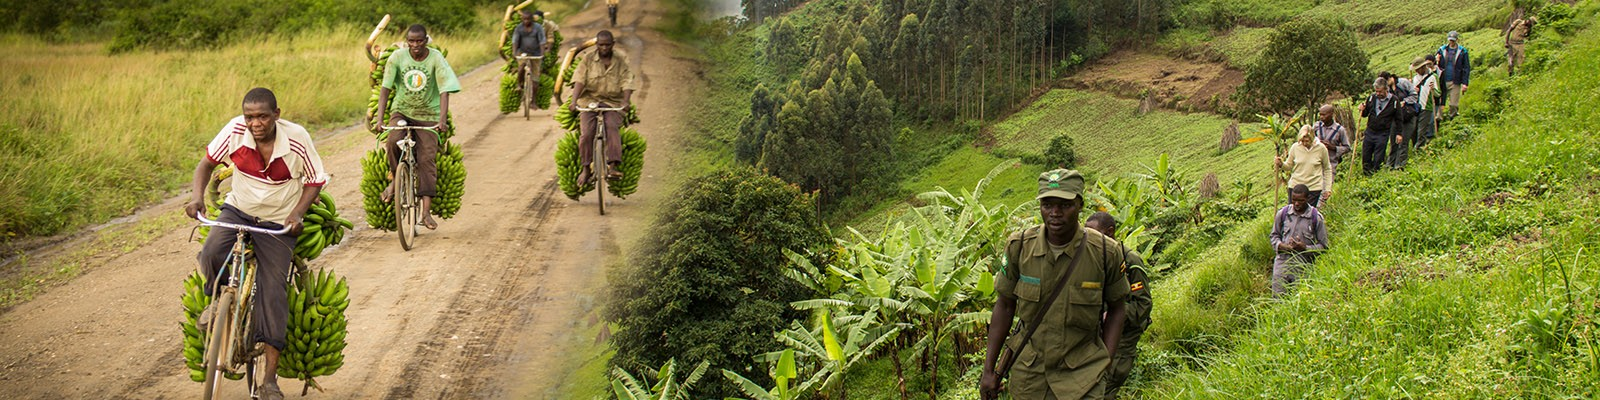 bwindi-impenetrable-forest-national-park-tours